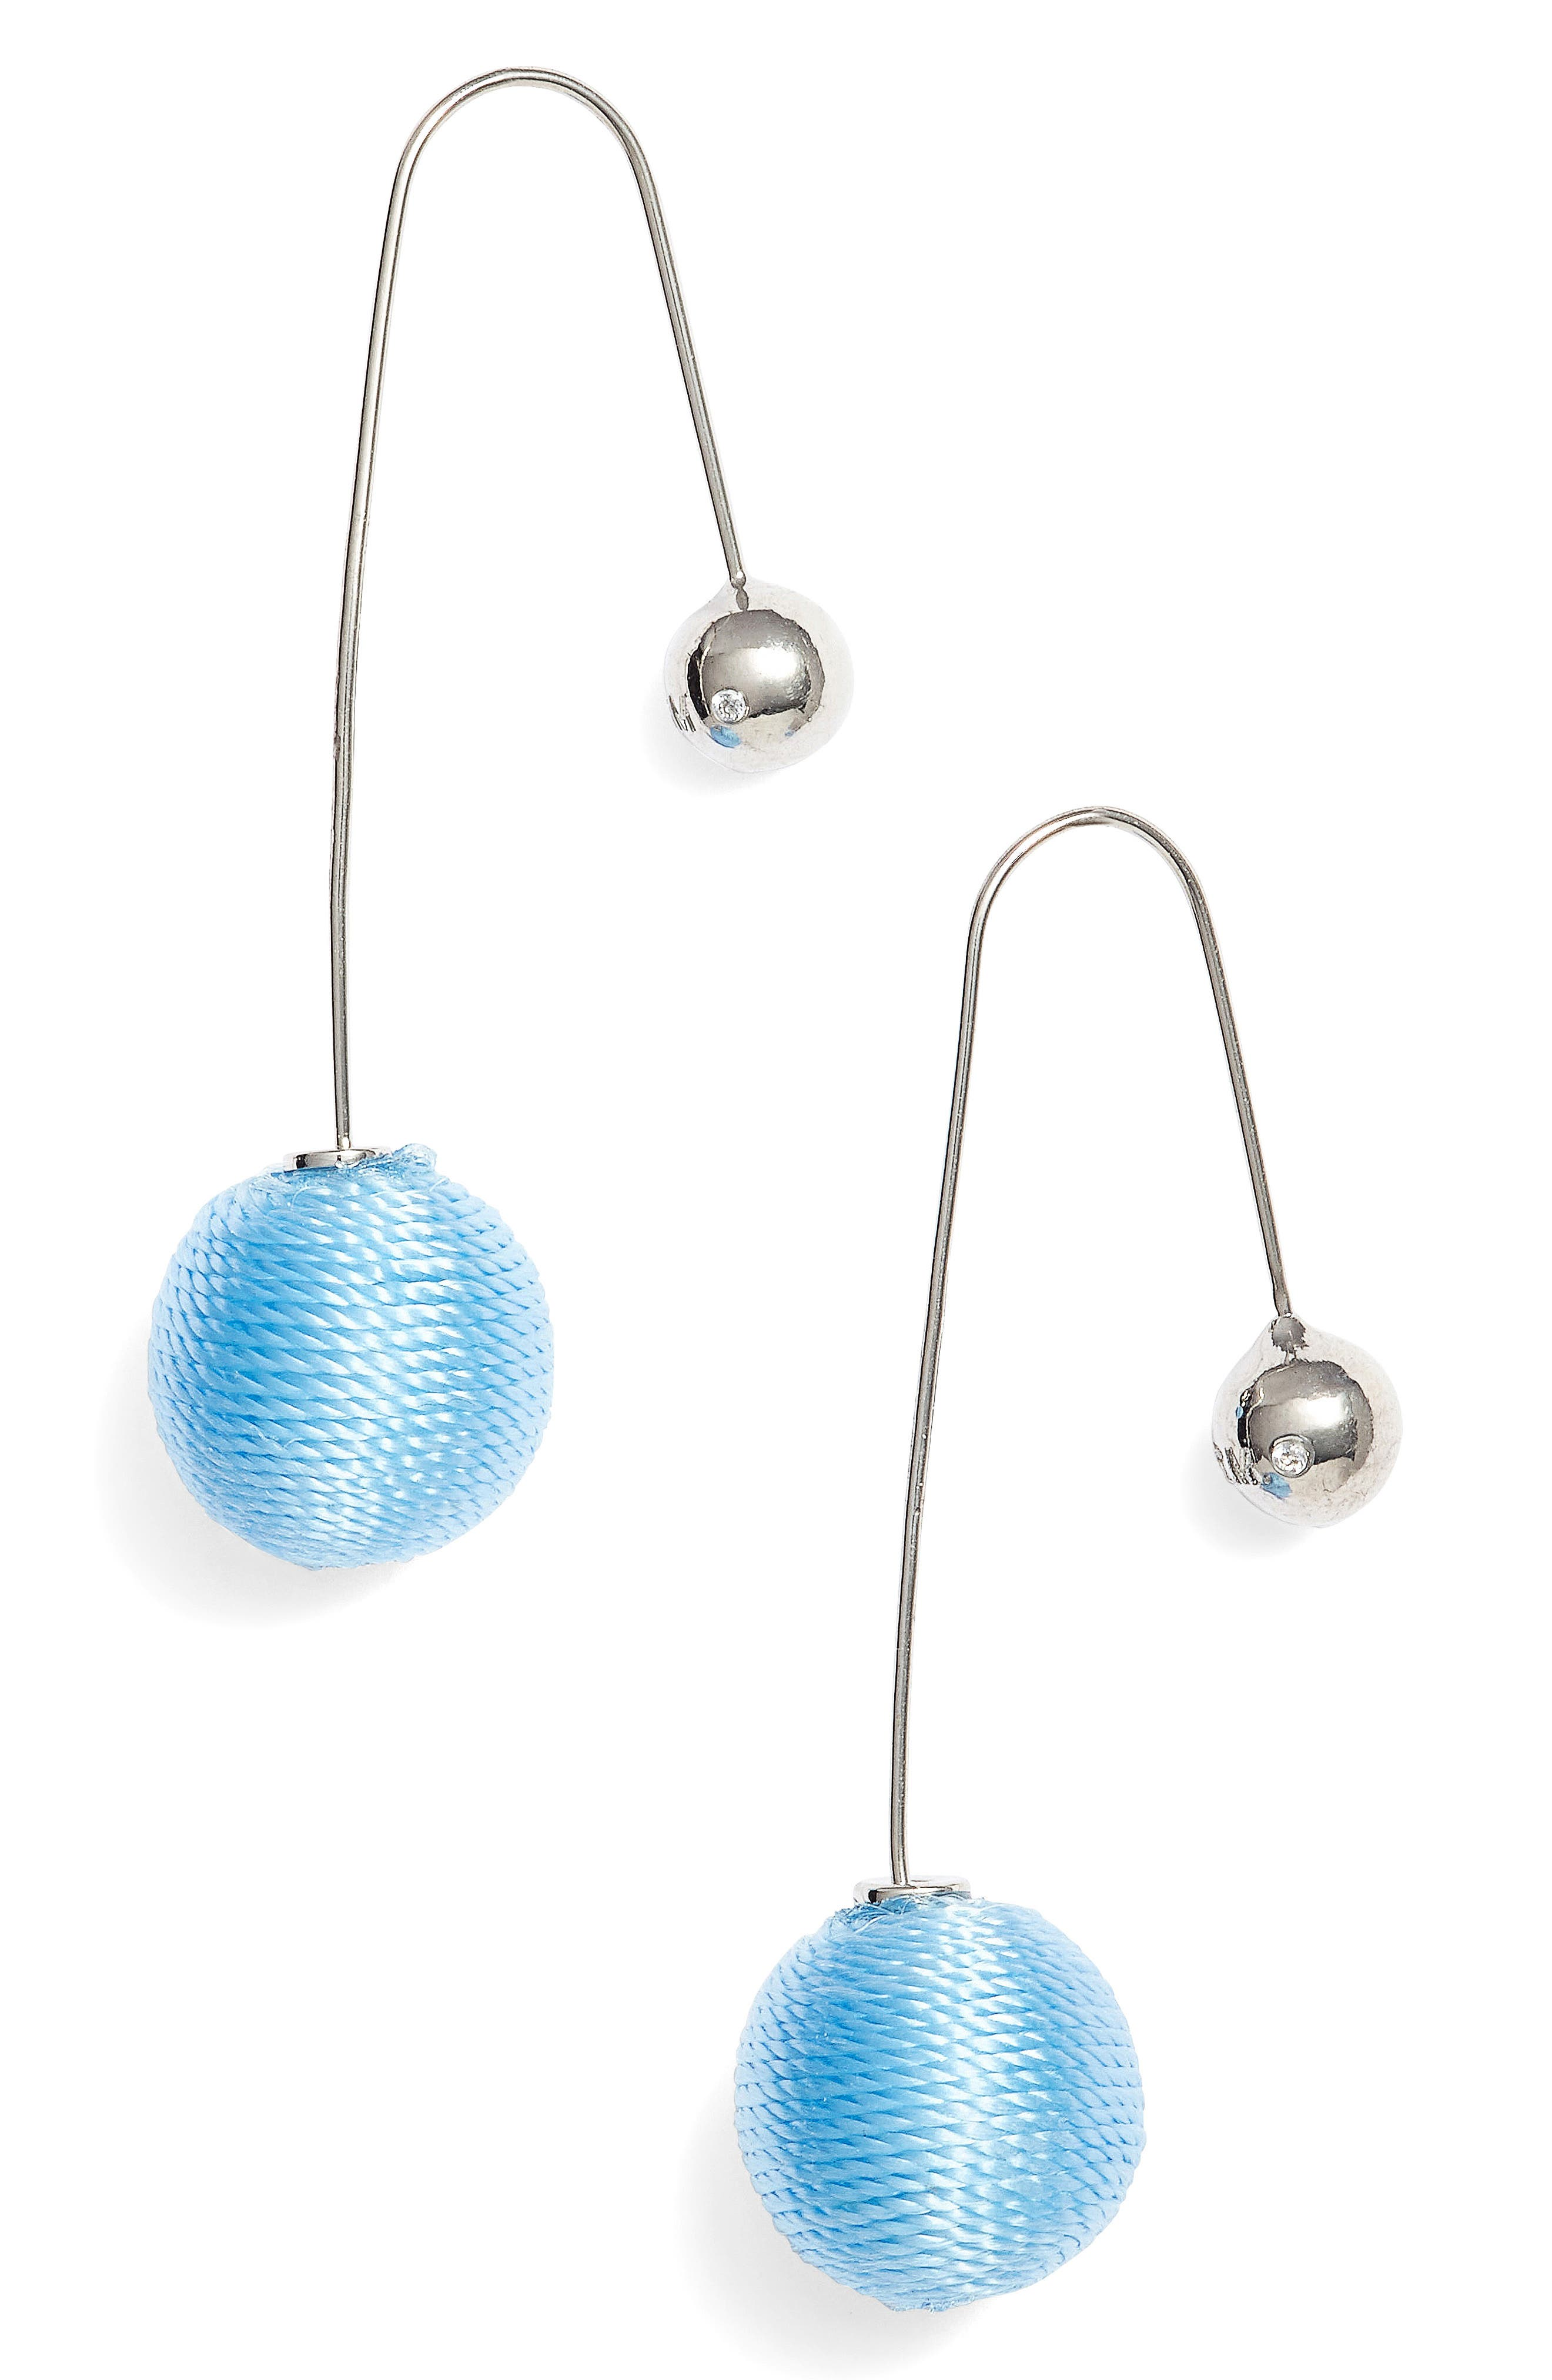 Contrast Sphere Threader Earrings,                             Main thumbnail 1, color,                             040